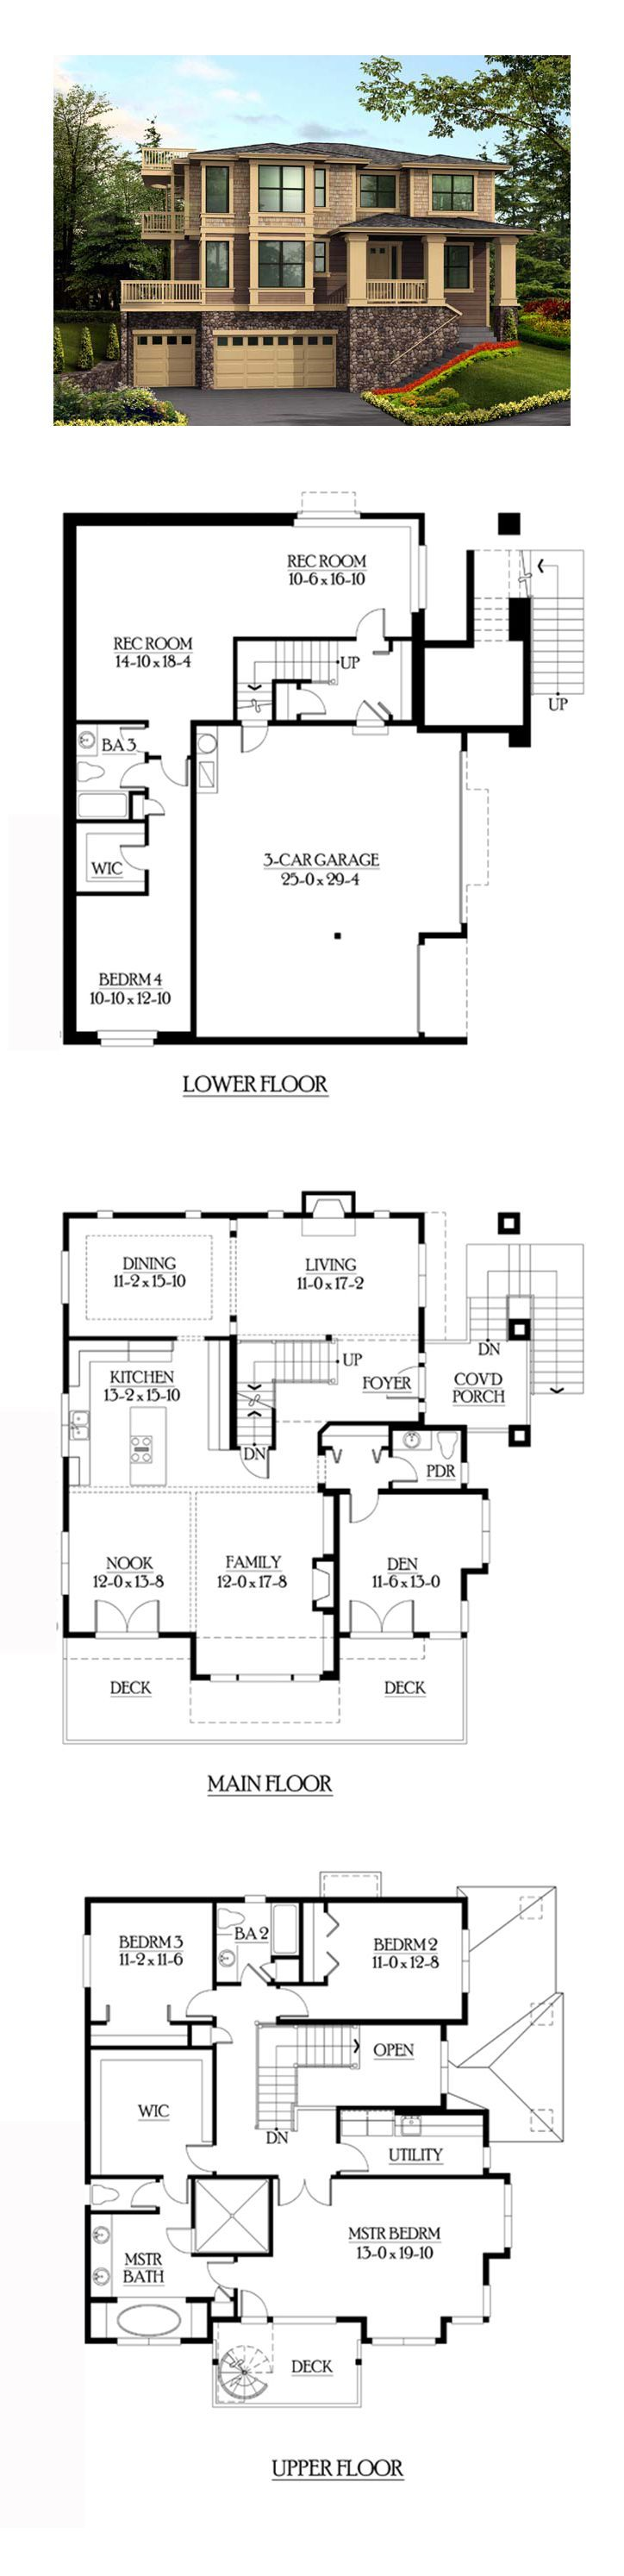 Finished basement house plans